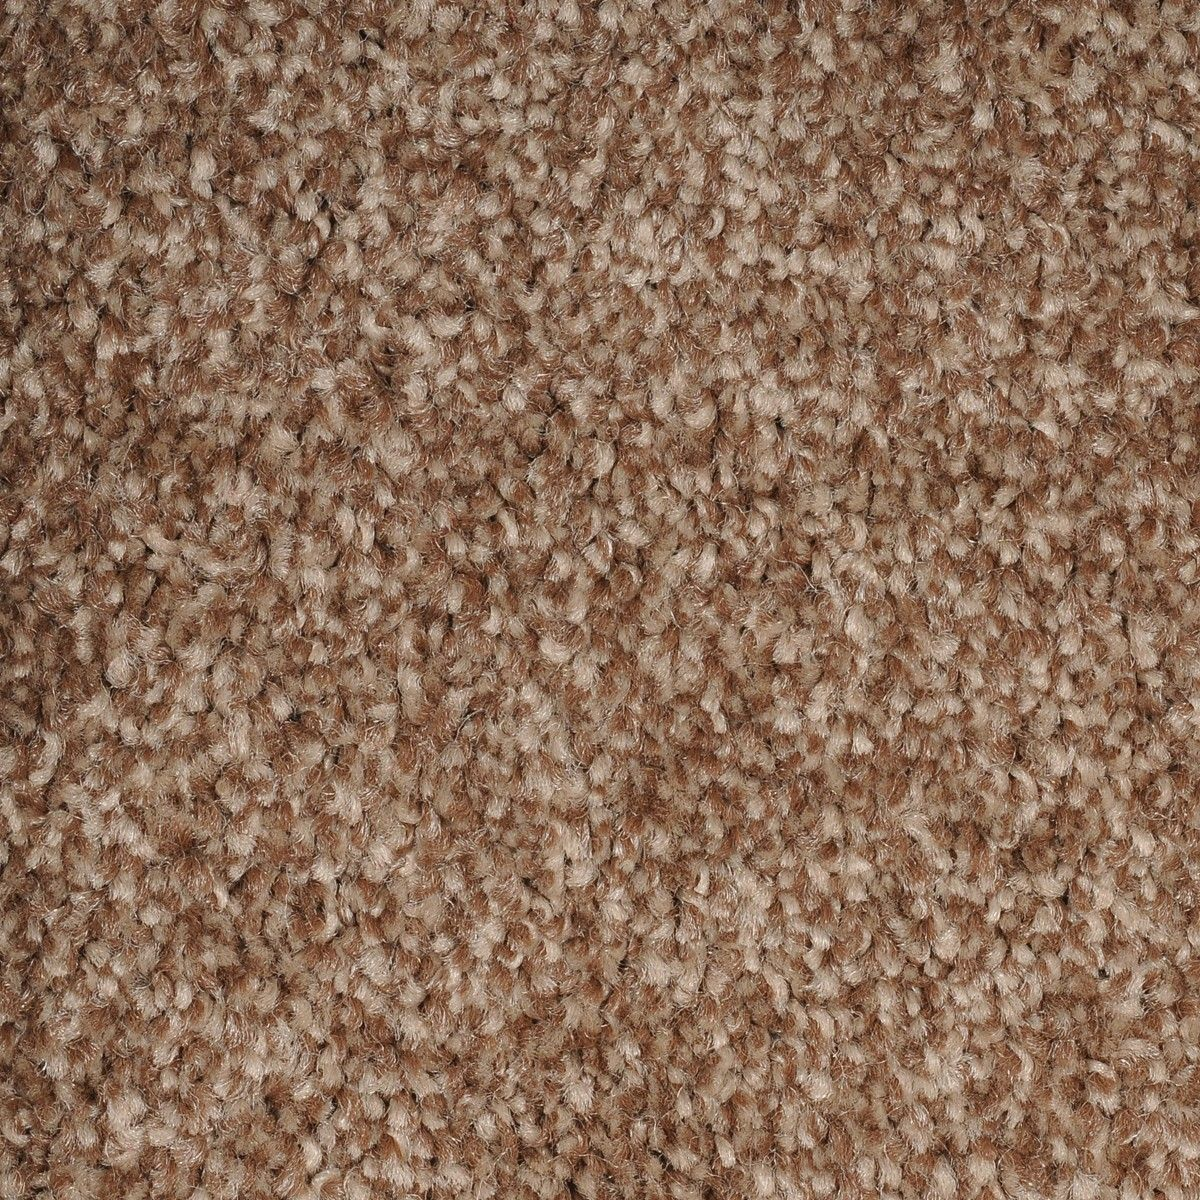 Discount Carpet Cheap Carpet Cheap Carpet Discount Carpet Area Rugs Cheap